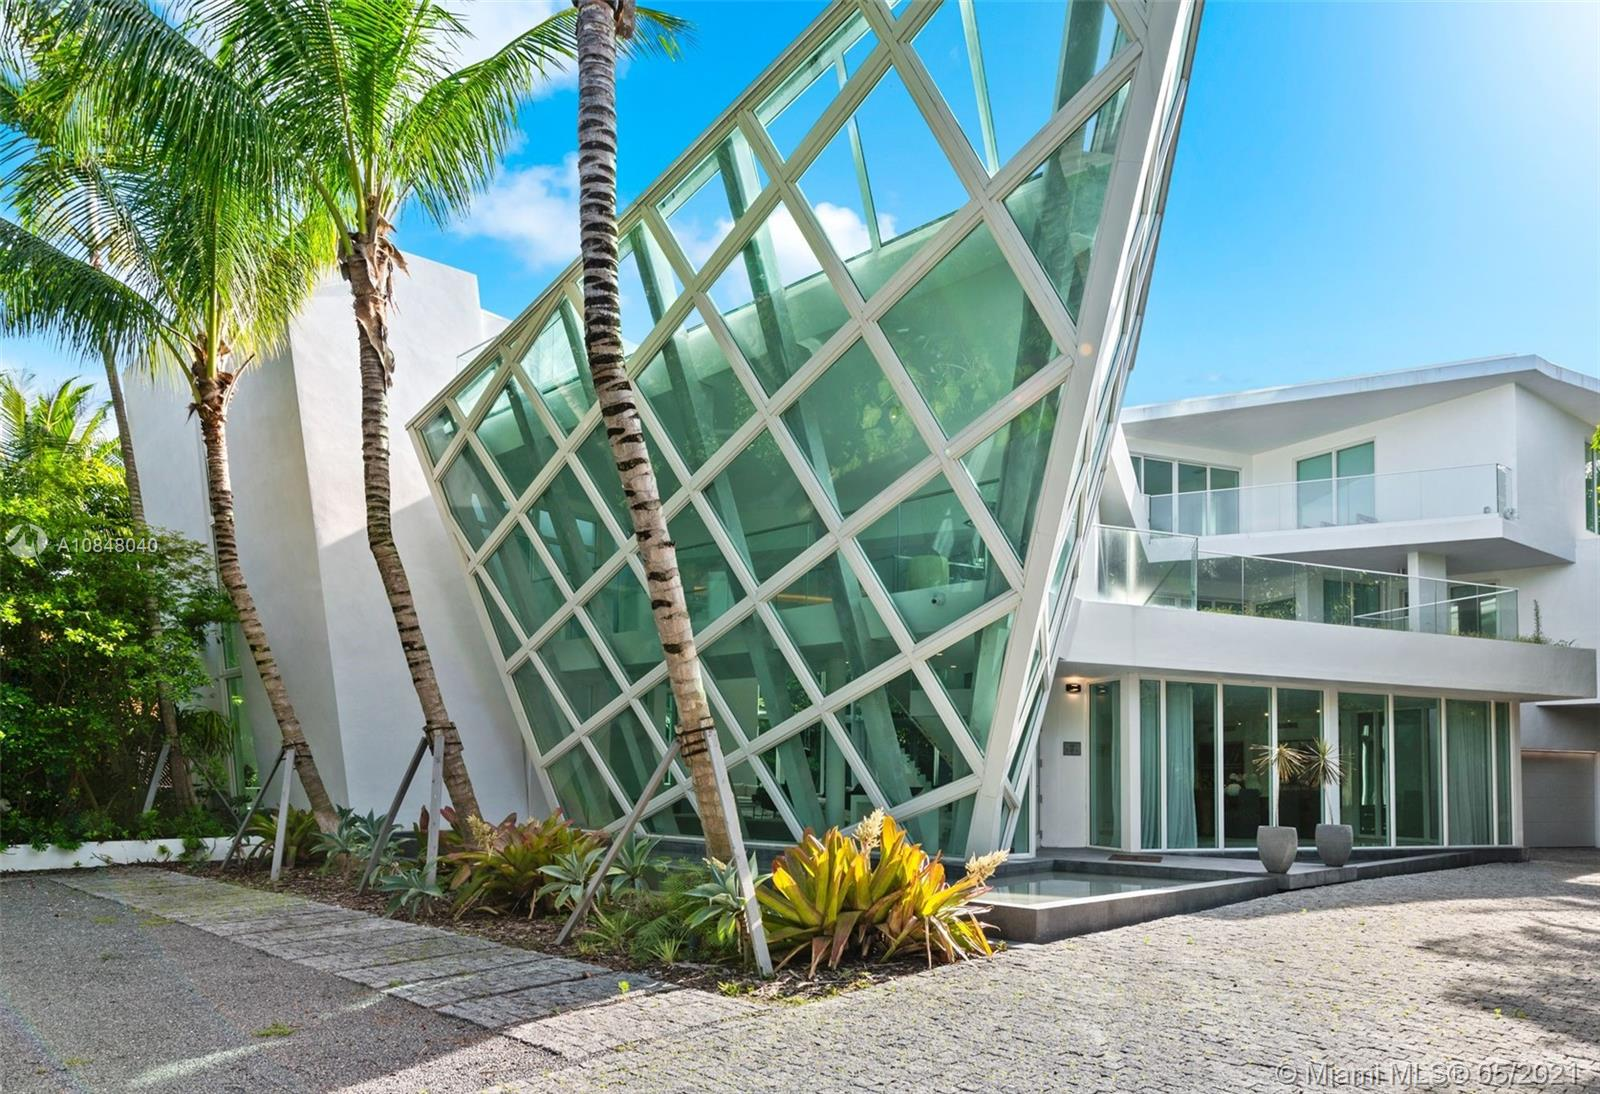 Exquisite Golden Beach Luxury Home, Historically referred to as the Arc. This 9000 sq.ft. Architectural Jewel is a streamline beauty, offering high ceiling contemporary grandeur, with its own private elevator. Alternatively you can climb the state of the art stairway, that leads you to a spectacular roof deck. The unique property also offers lavish walk in closet, Palatial bathrooms and Italian Designer Kitchen. Make an entrance where ever you walk in this 6 bedroom 8 bathroom internationally recognized home. Seller financing available.